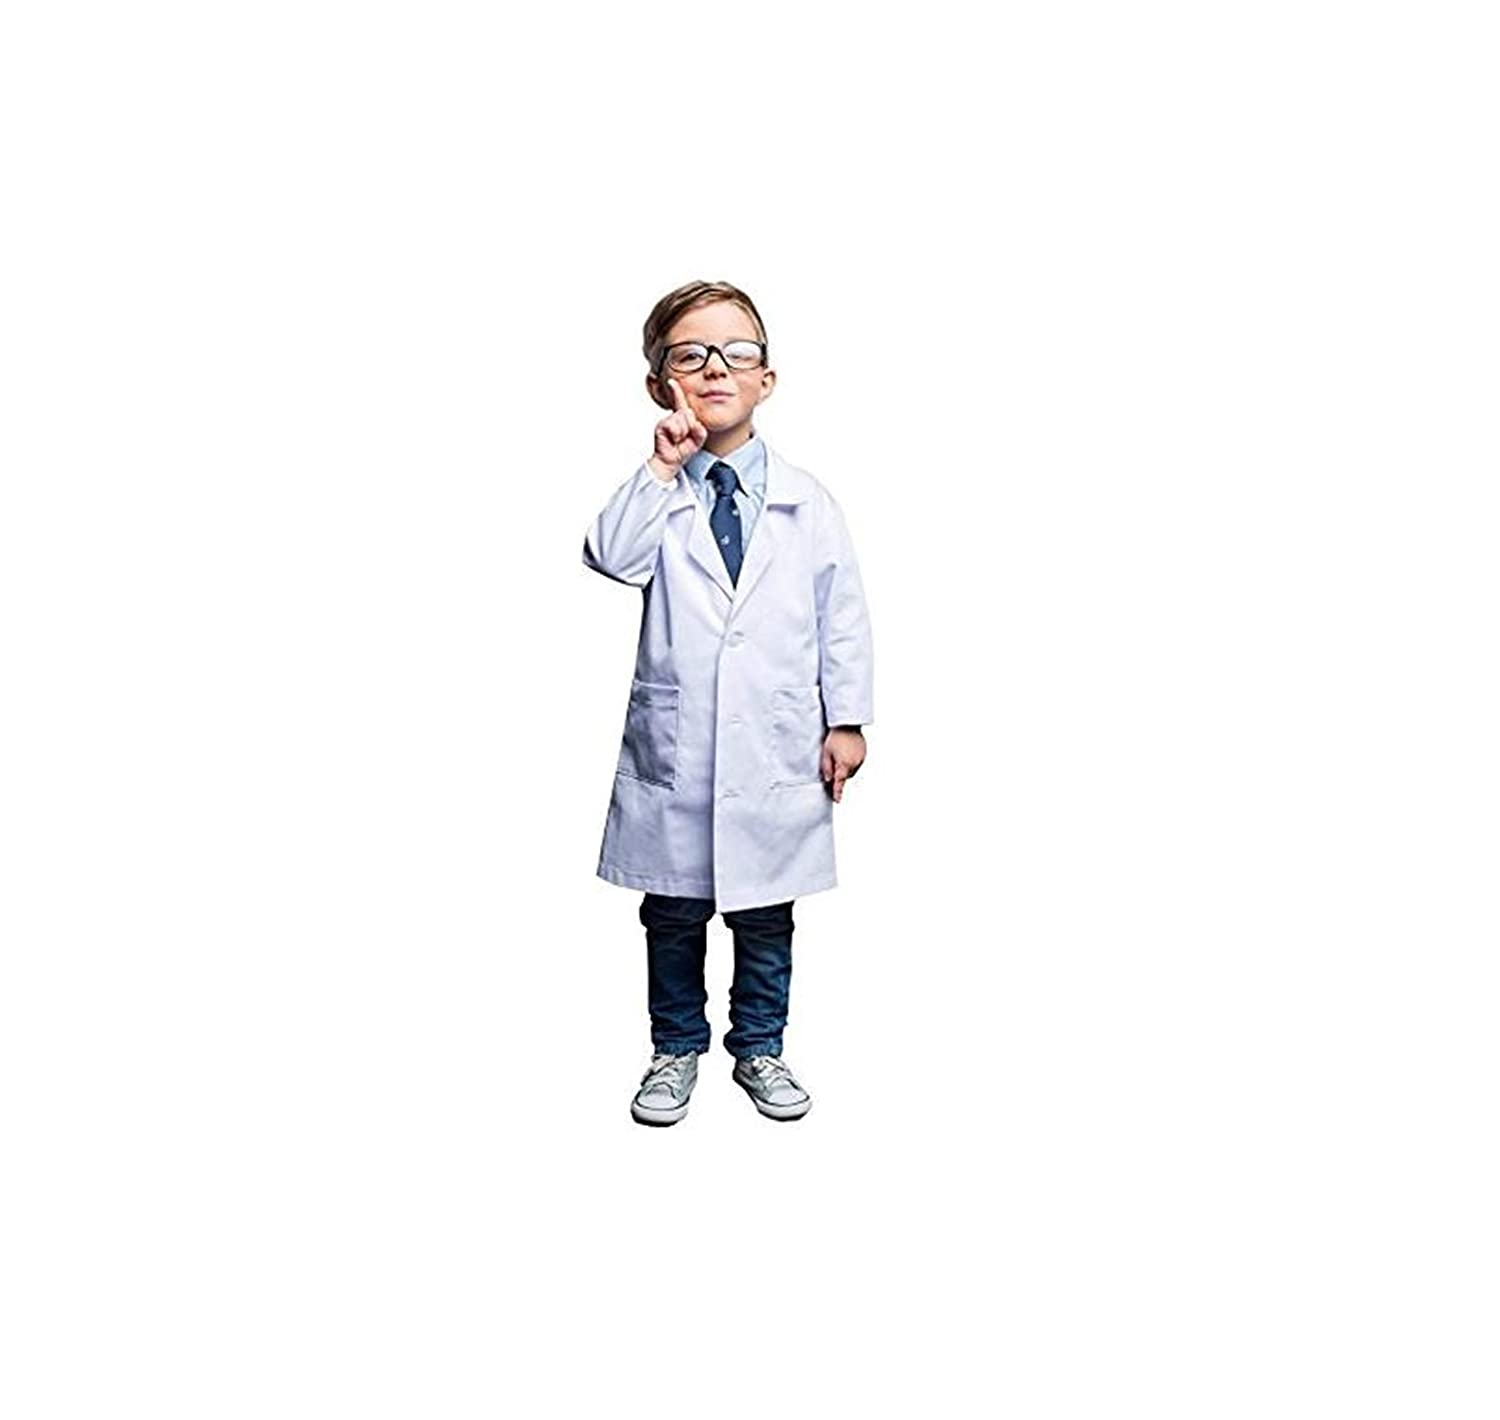 Natural Uniforms Real Childrens Lab Coat for School Projects Halloween Costumes